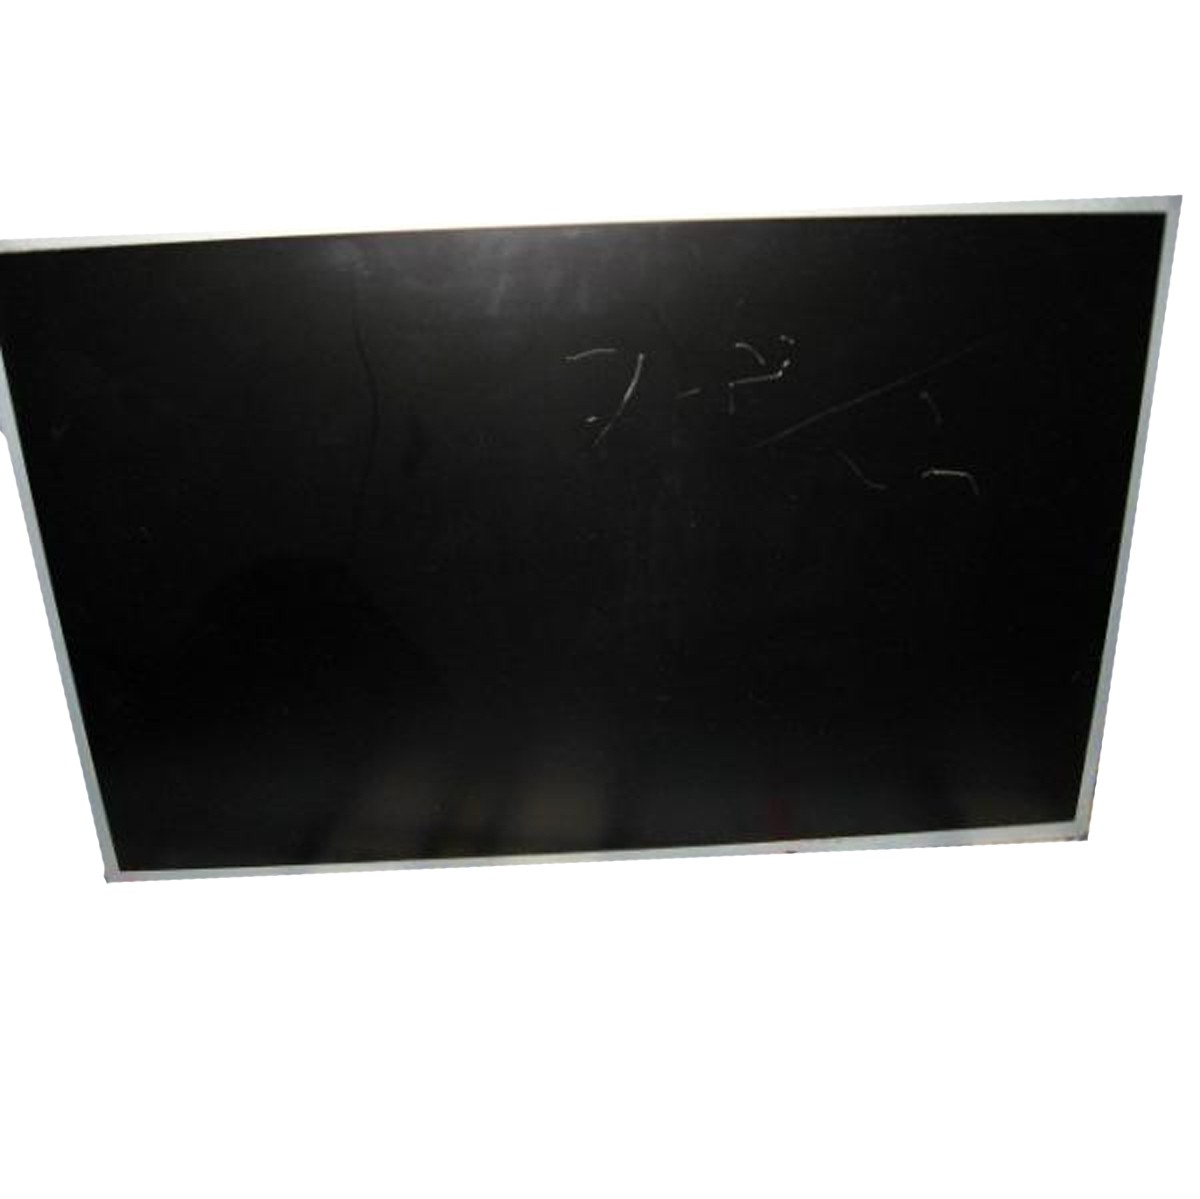 Tela Display LCD Monitor LG W2284ft PN:LM220WE1 - Retirado